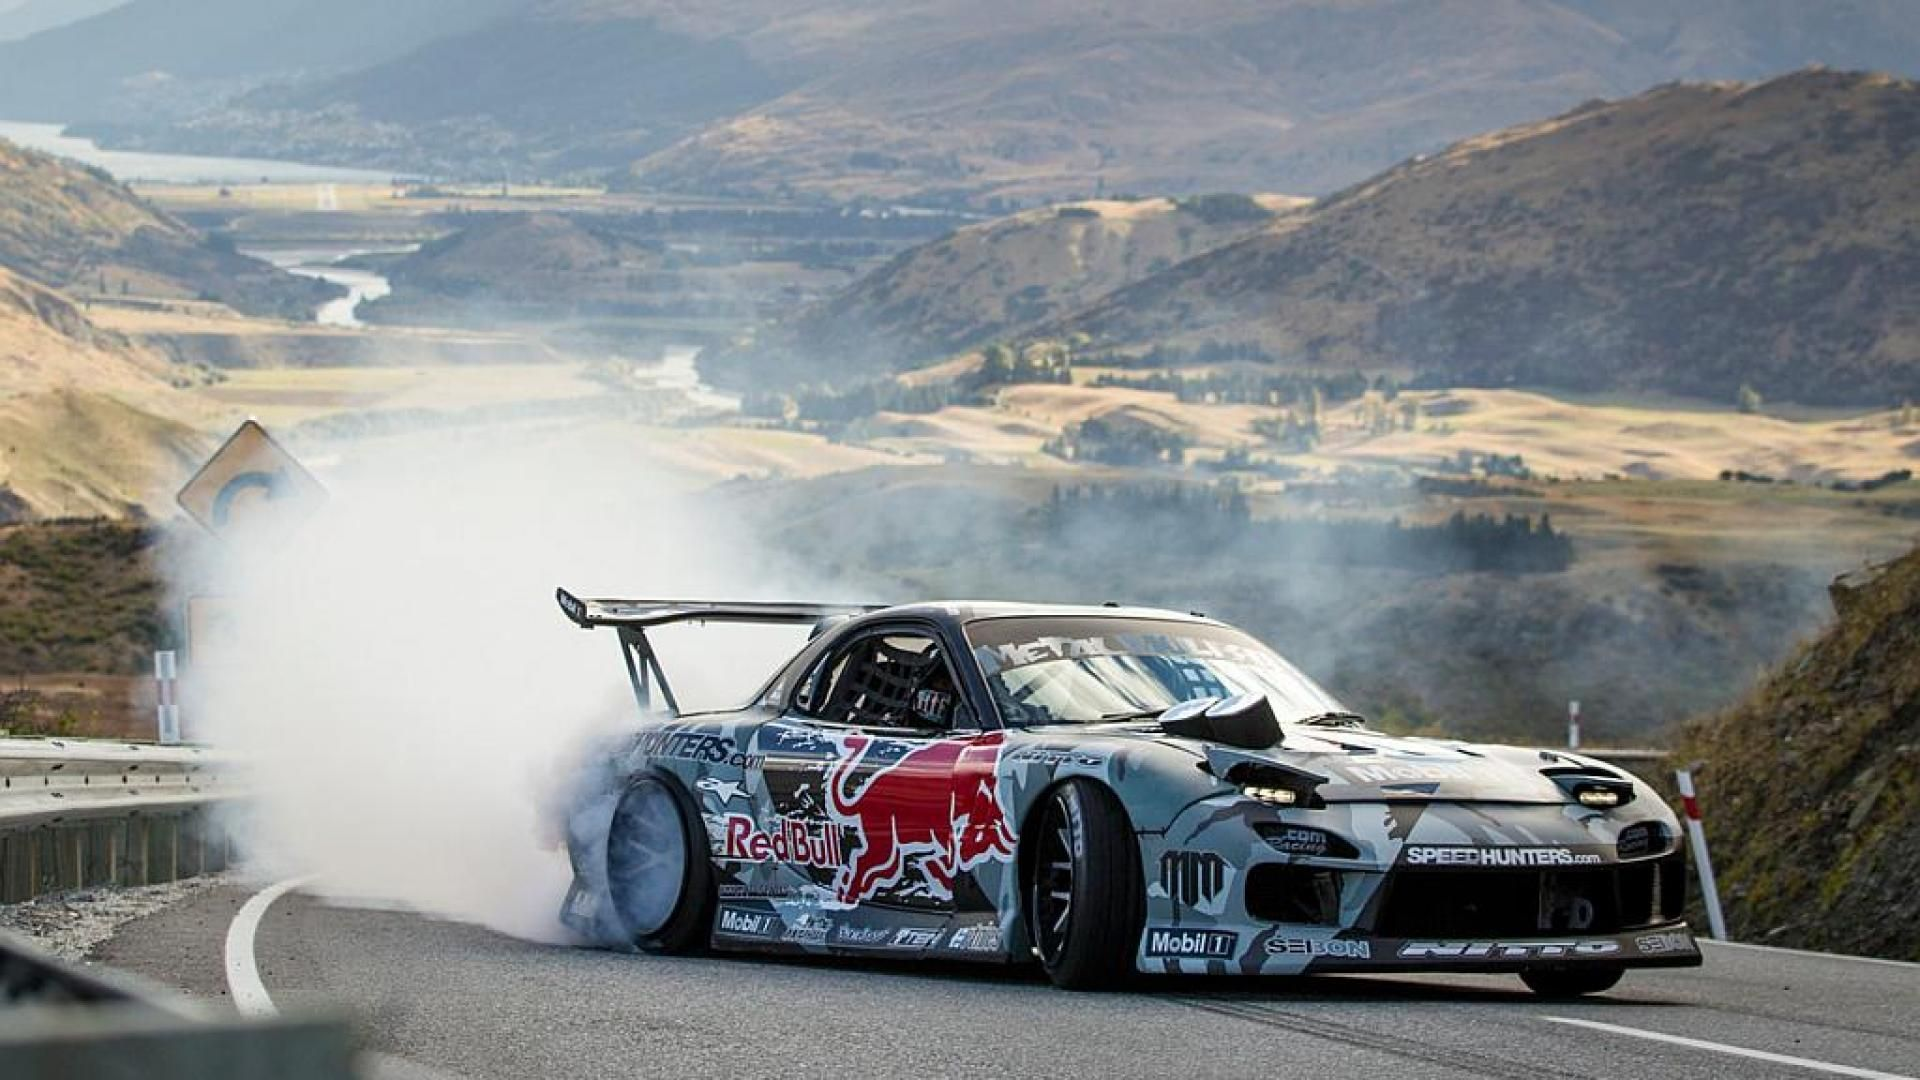 Pin By Renato Silva On Jdm Lifestyle Pinterest Mazda And Jdm